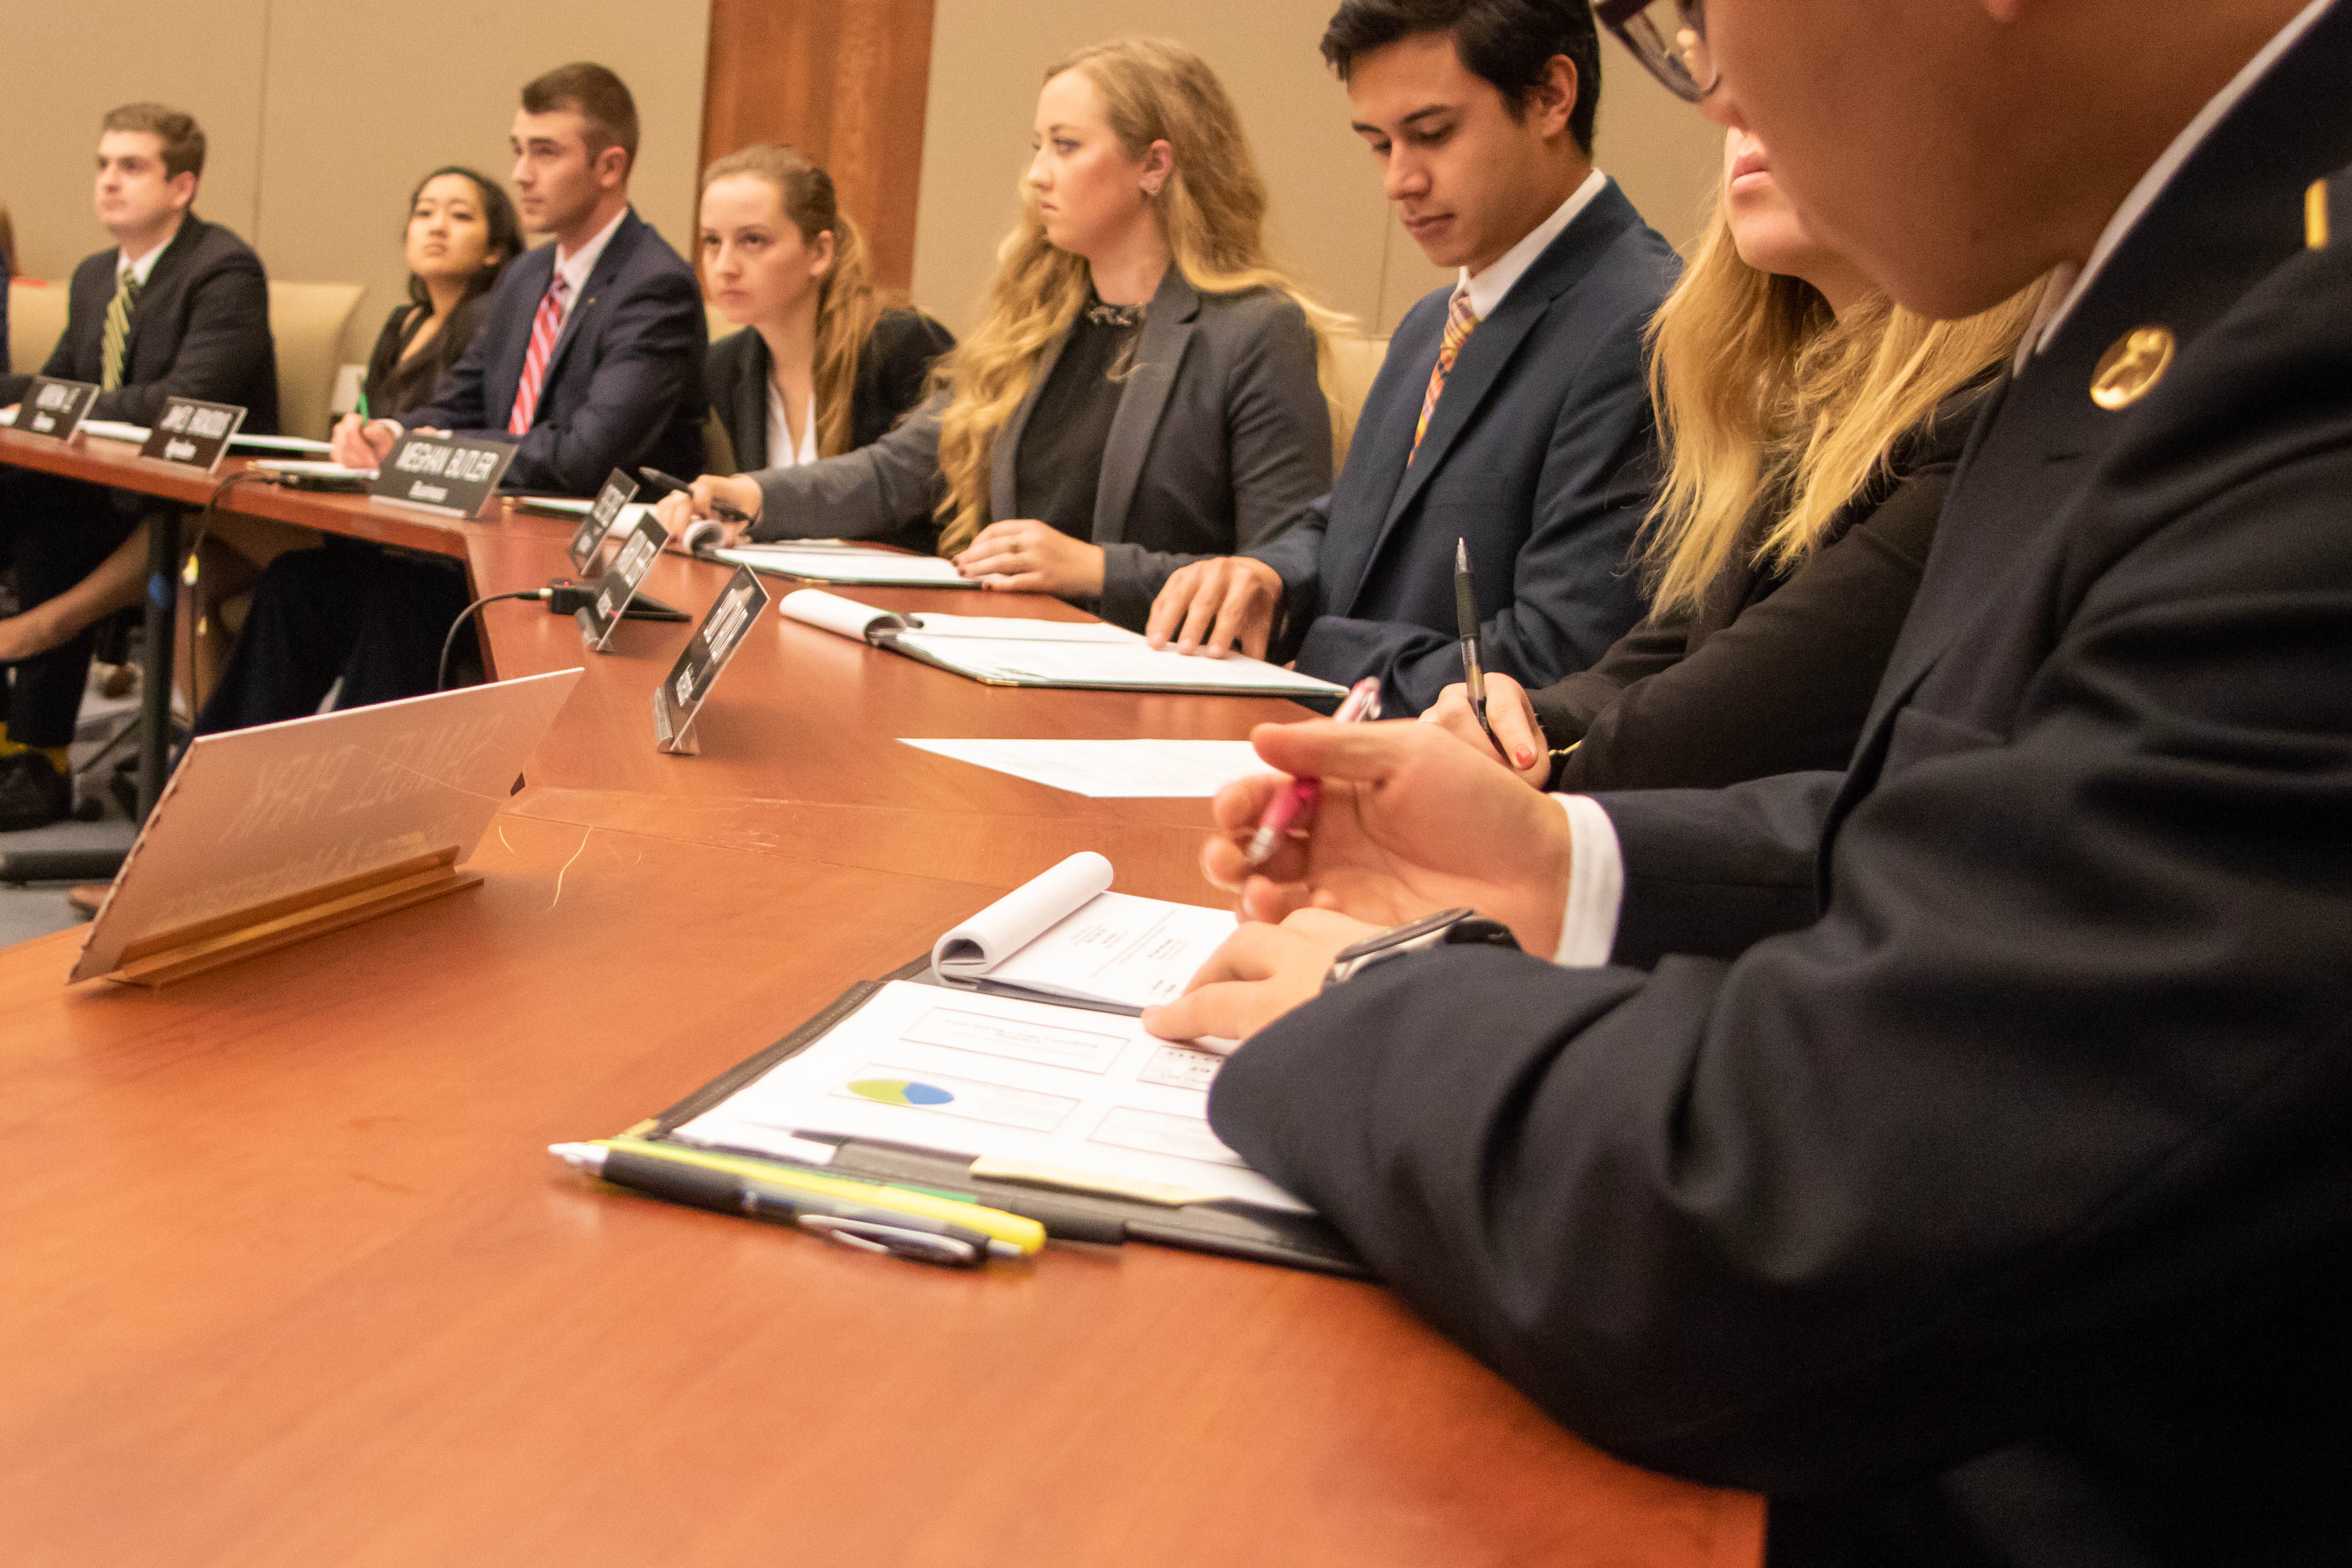 Students sit at a table and take notes at a board meeting